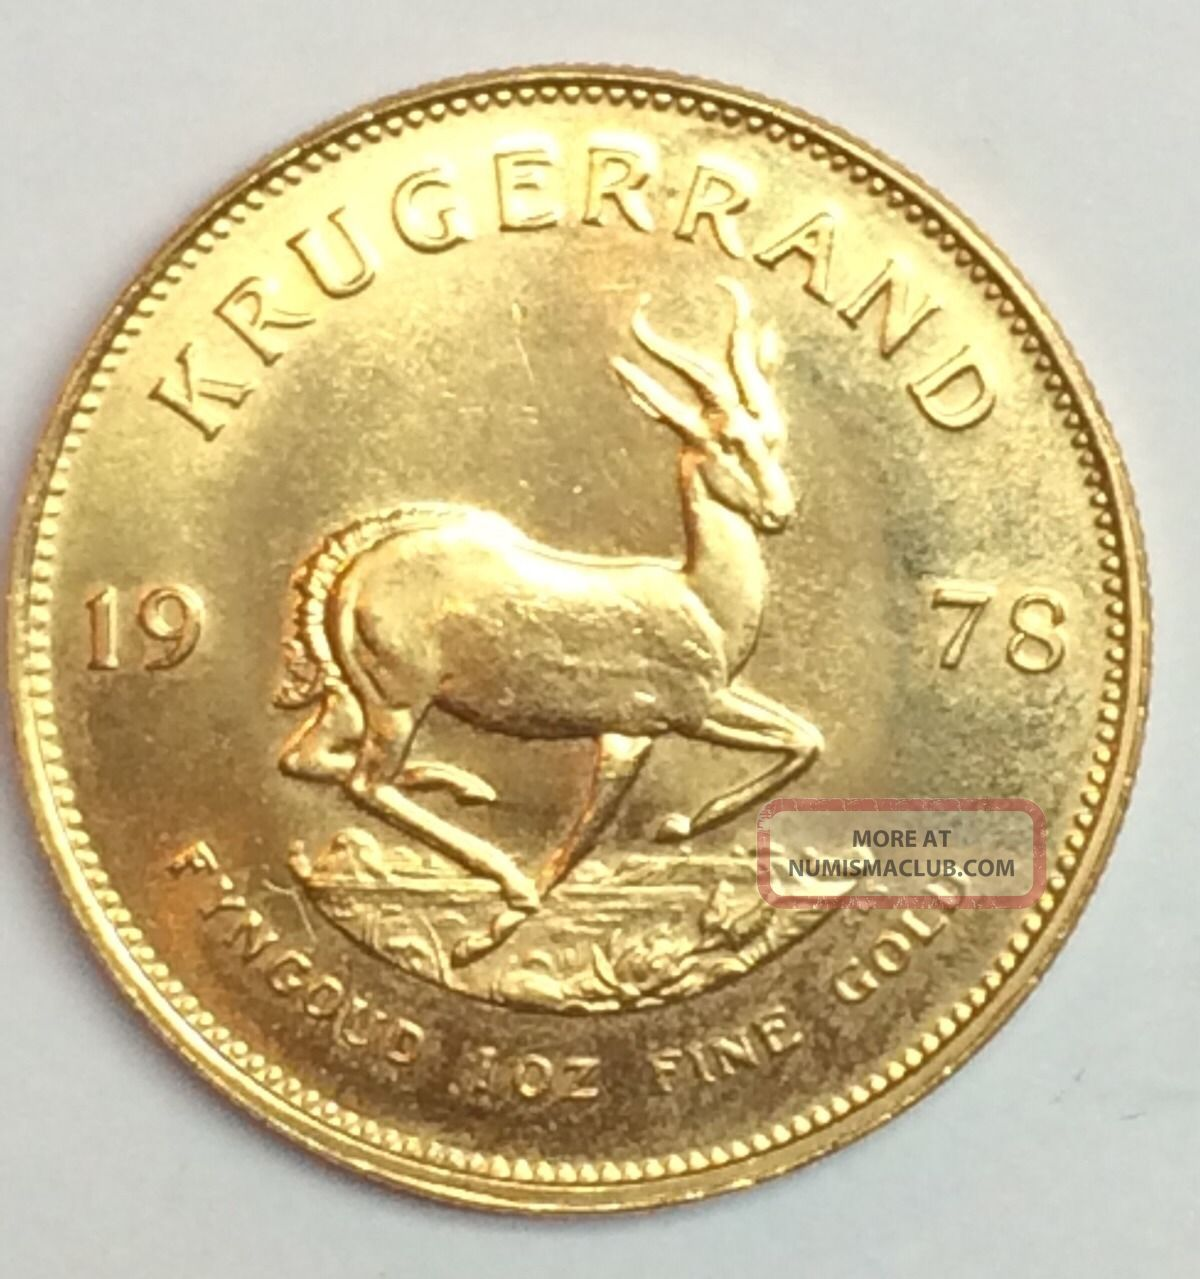 1978 1 0 Oz Gold South African Krugerrand Coin Uncirculated